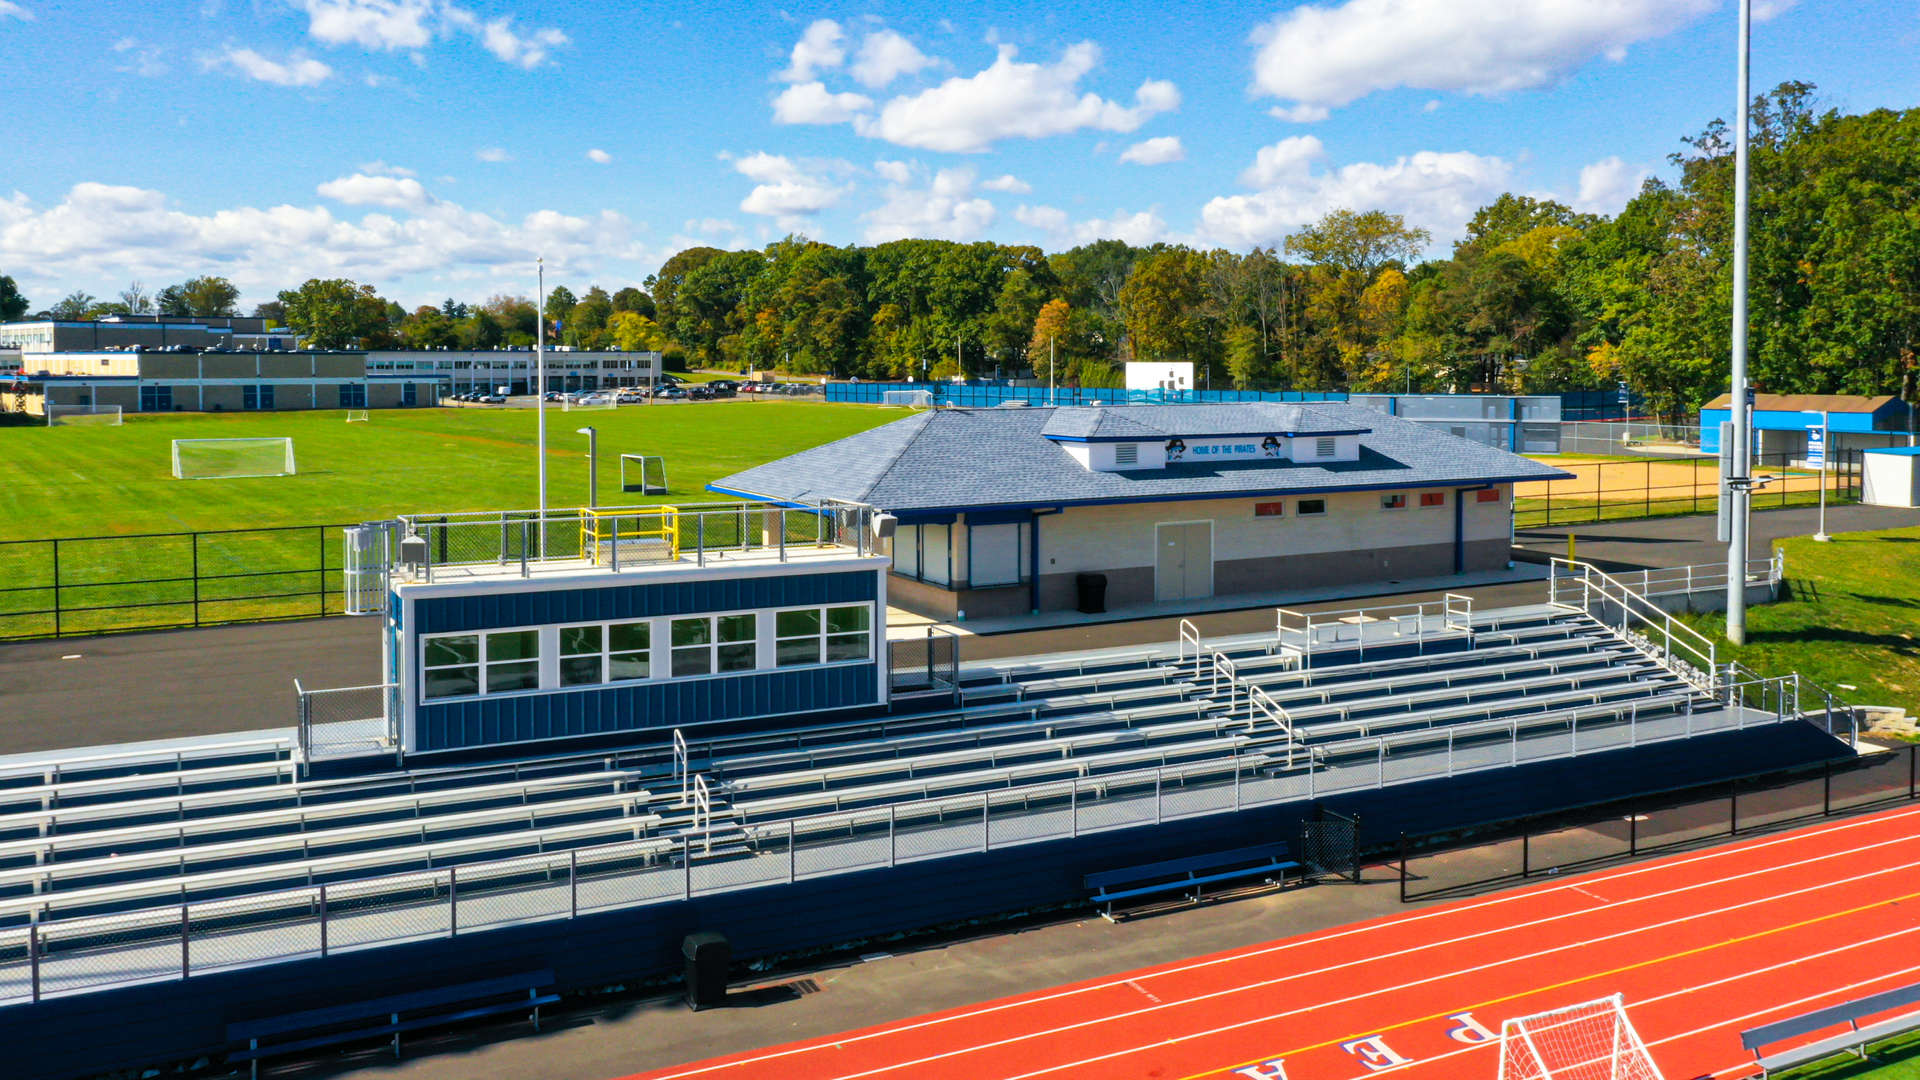 Second  PRSD HS Bleachers and Concession Stand - Drone Shot